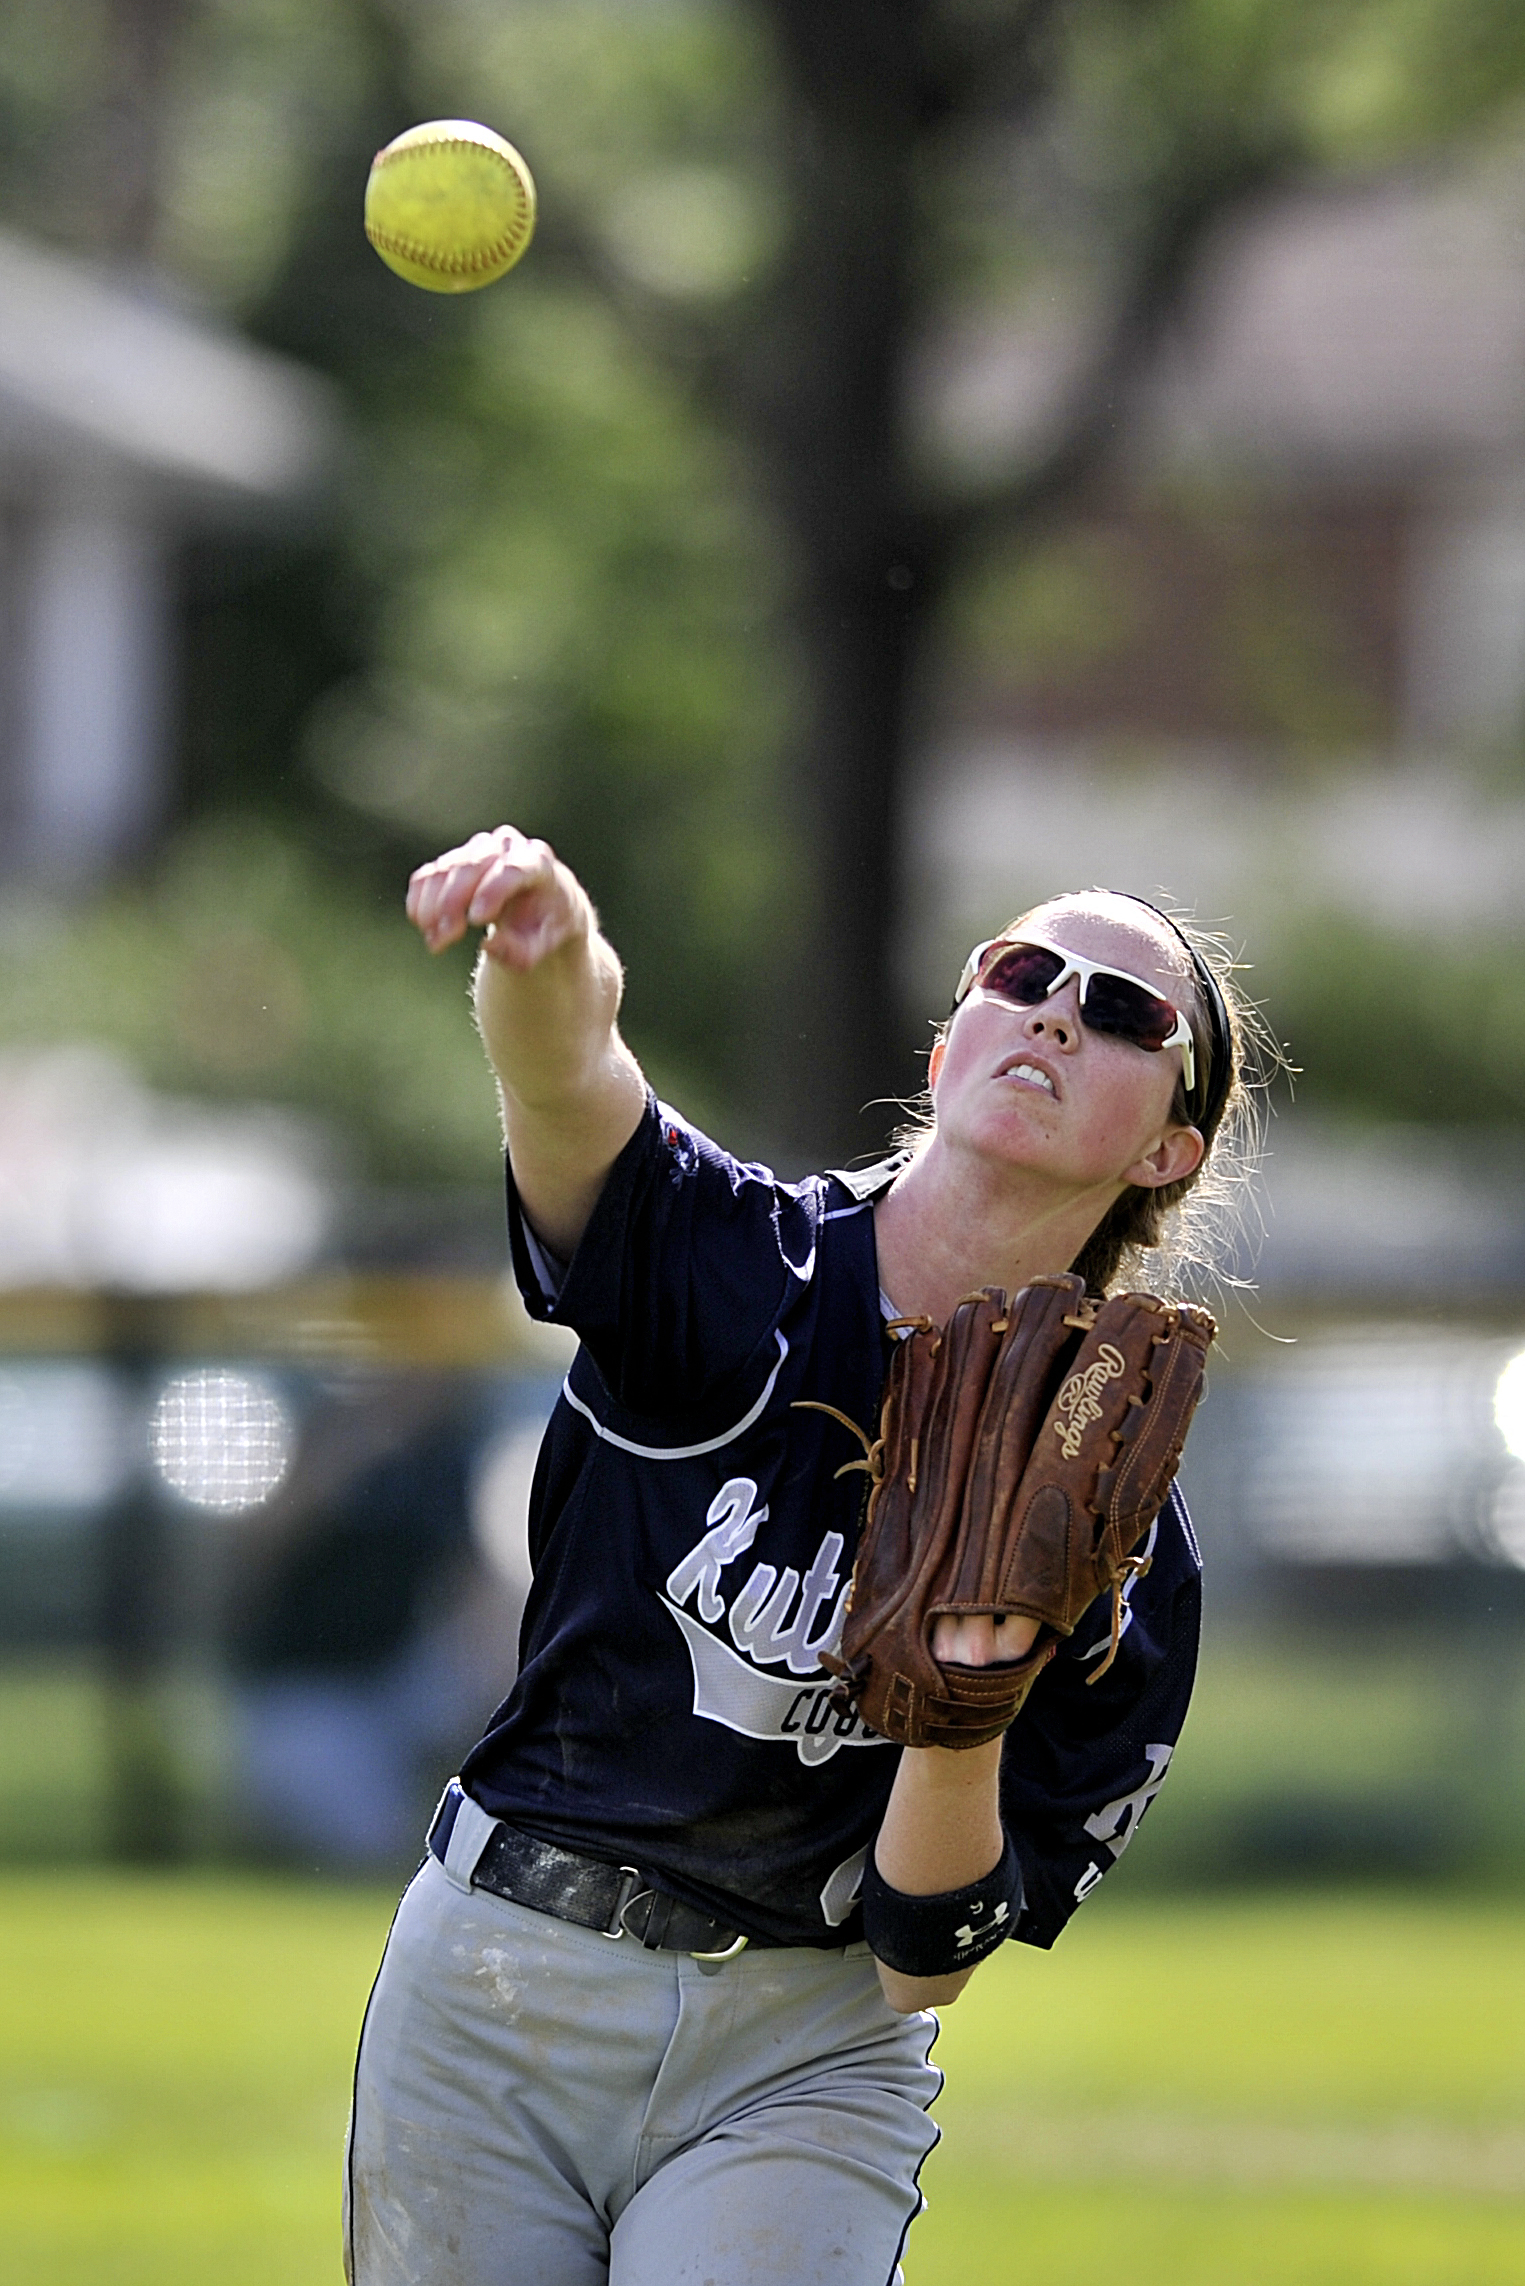 Maria Meigio throws the ball during the PIAA playoff game against Holy Redeemer on June 9, 2016, at Lyons Ballfield. (Sarah Stier: Reading Eagle)